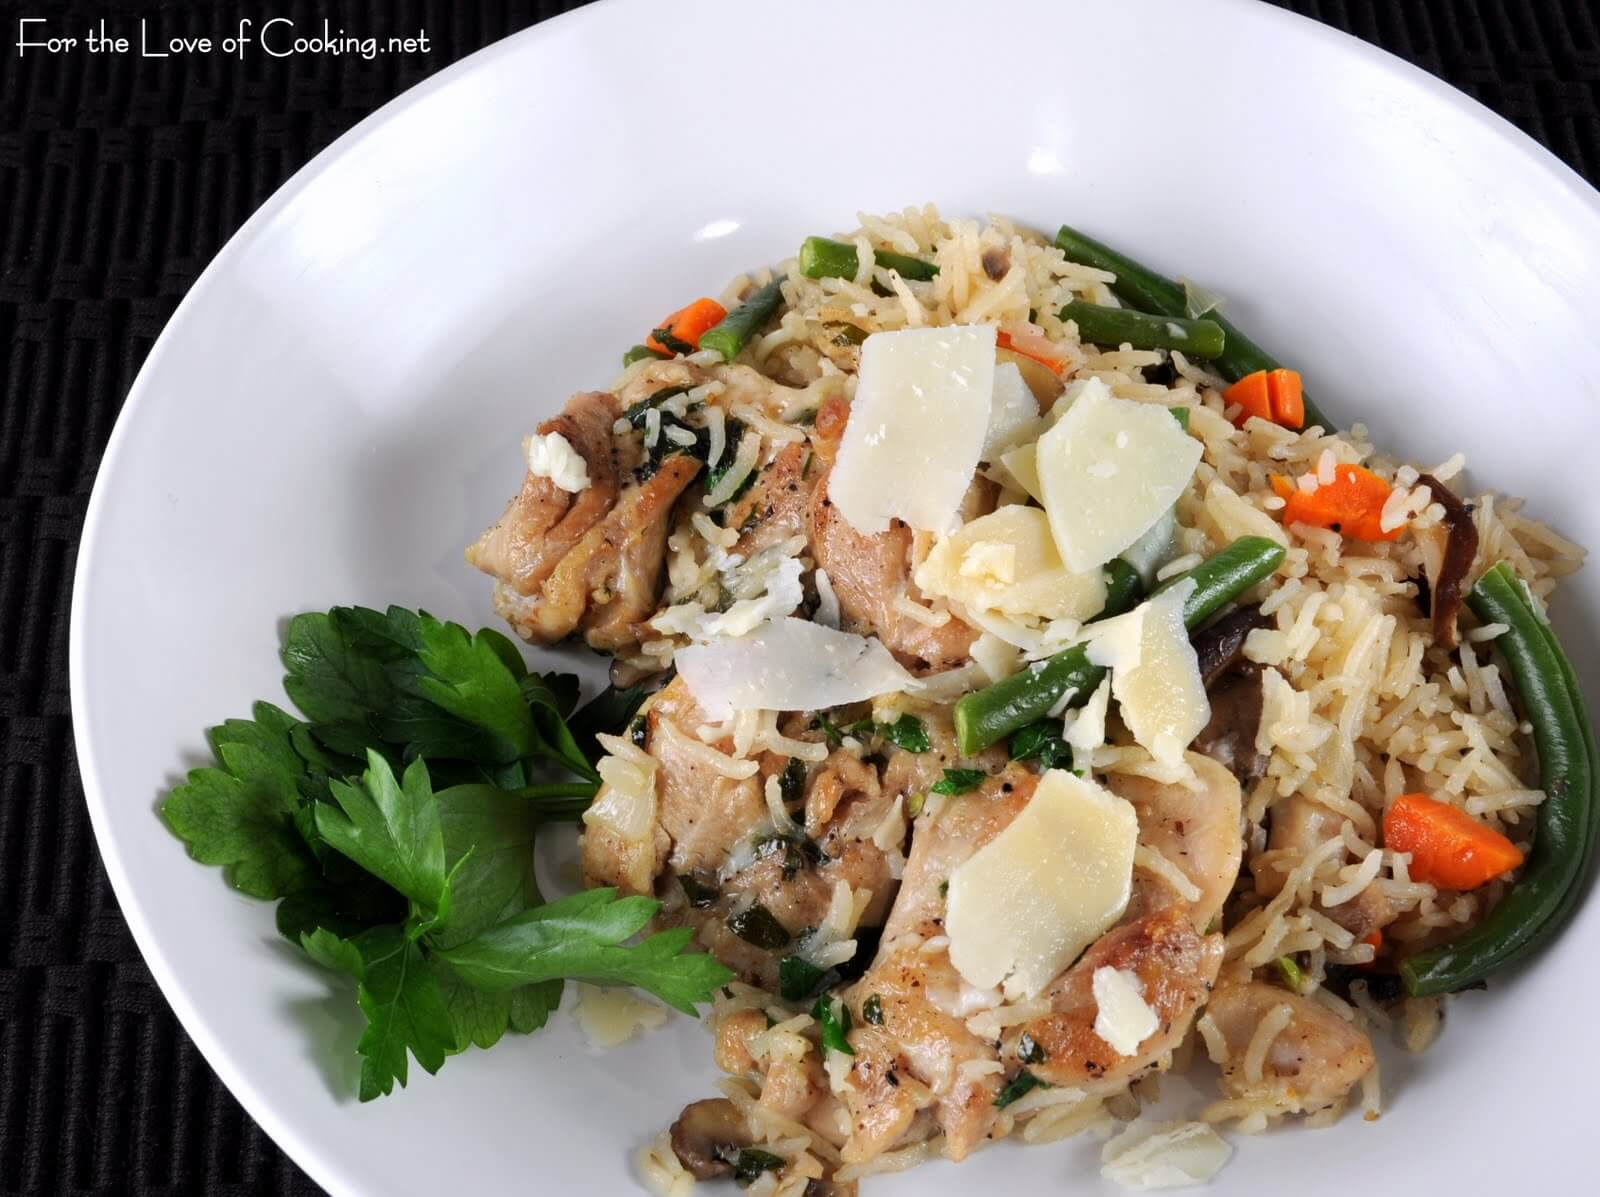 Chicken and Rice with Veggies